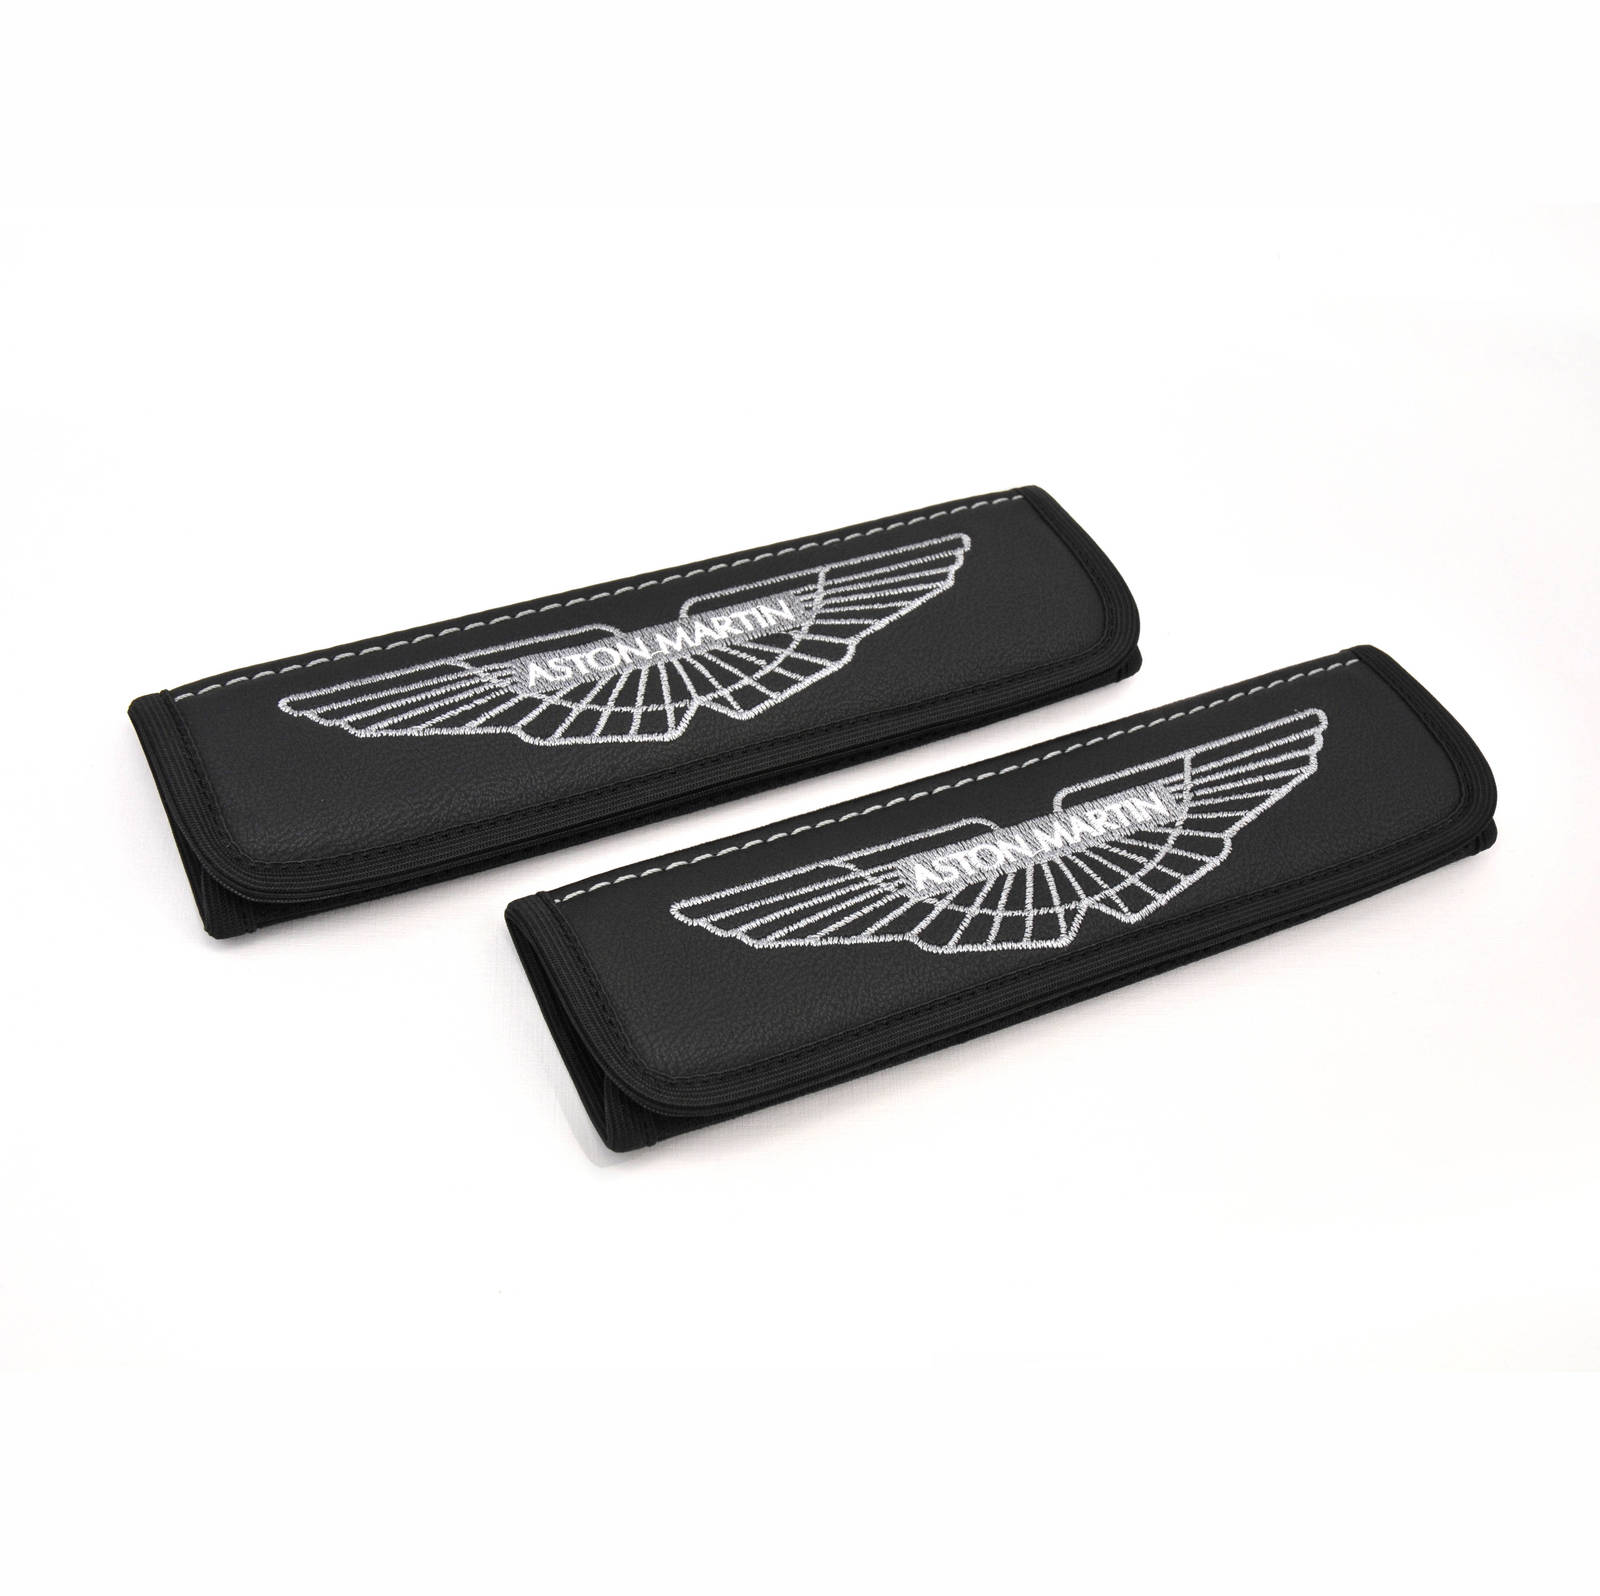 Aston Martin Seat Belt Covers Shoulder Pad And Similar Items - Aston martin accessories